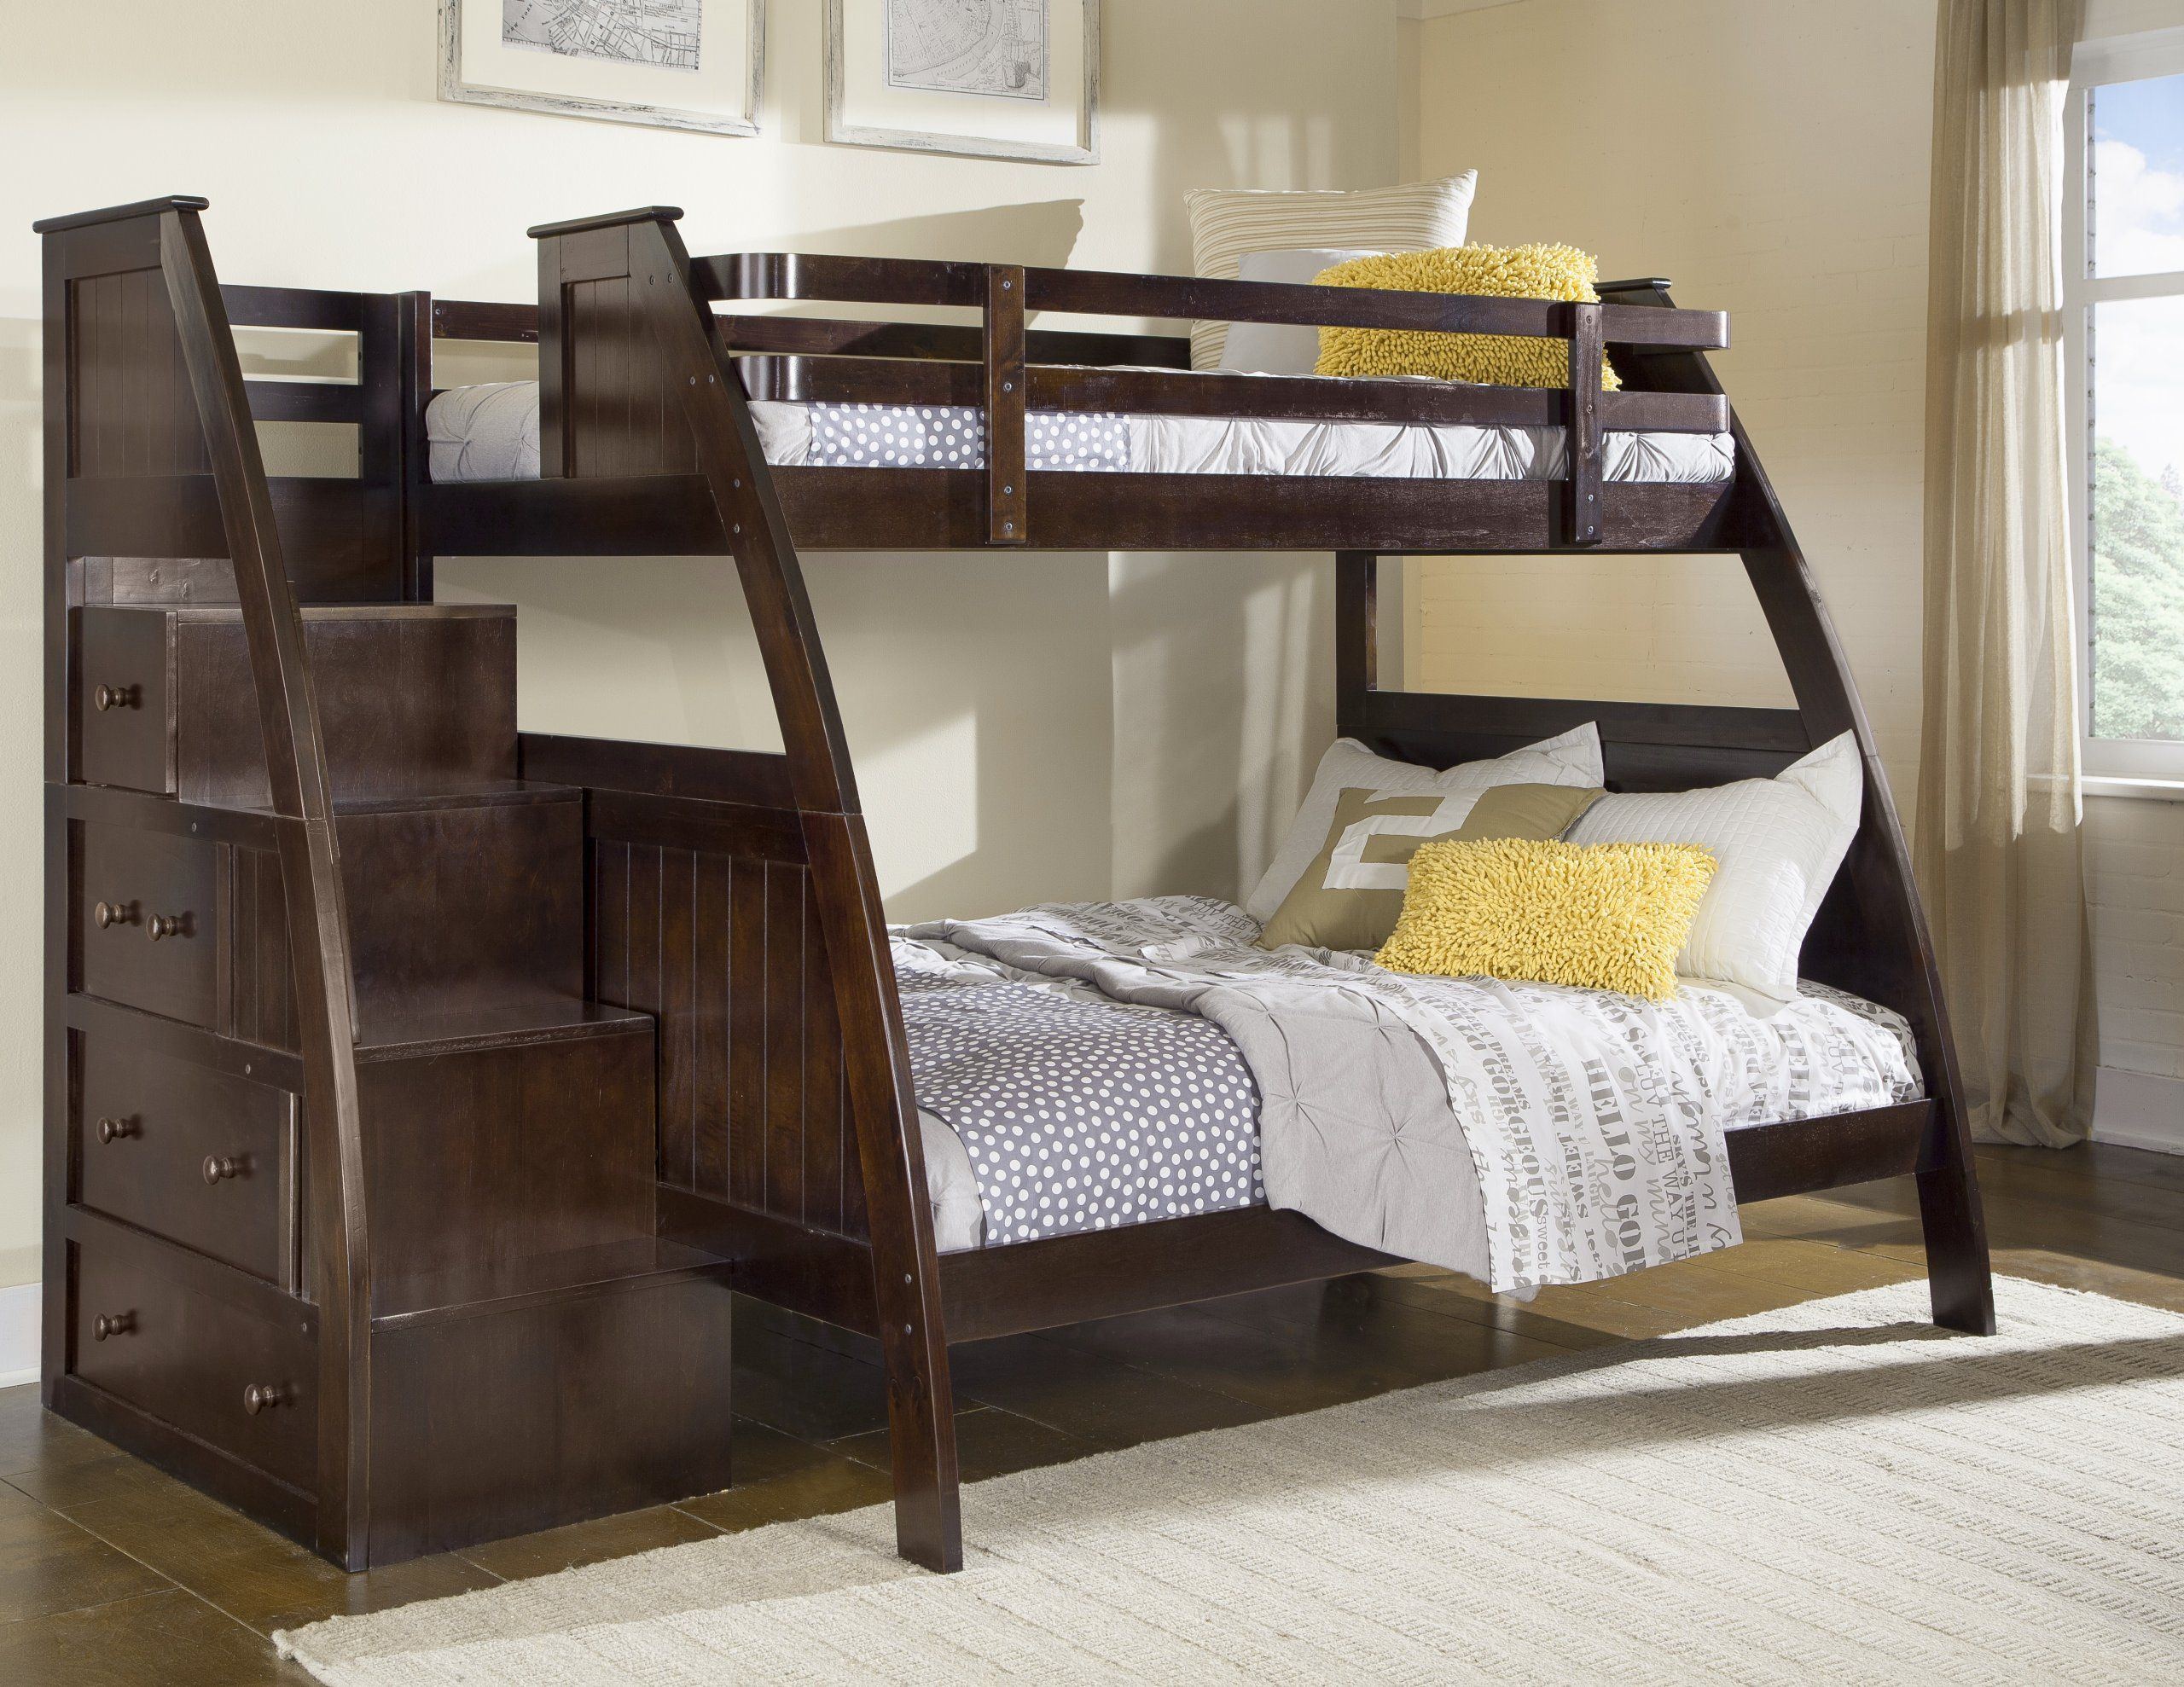 storage with room case in cool bed bunk is stair looks this beds and boys like drawers pin stairs